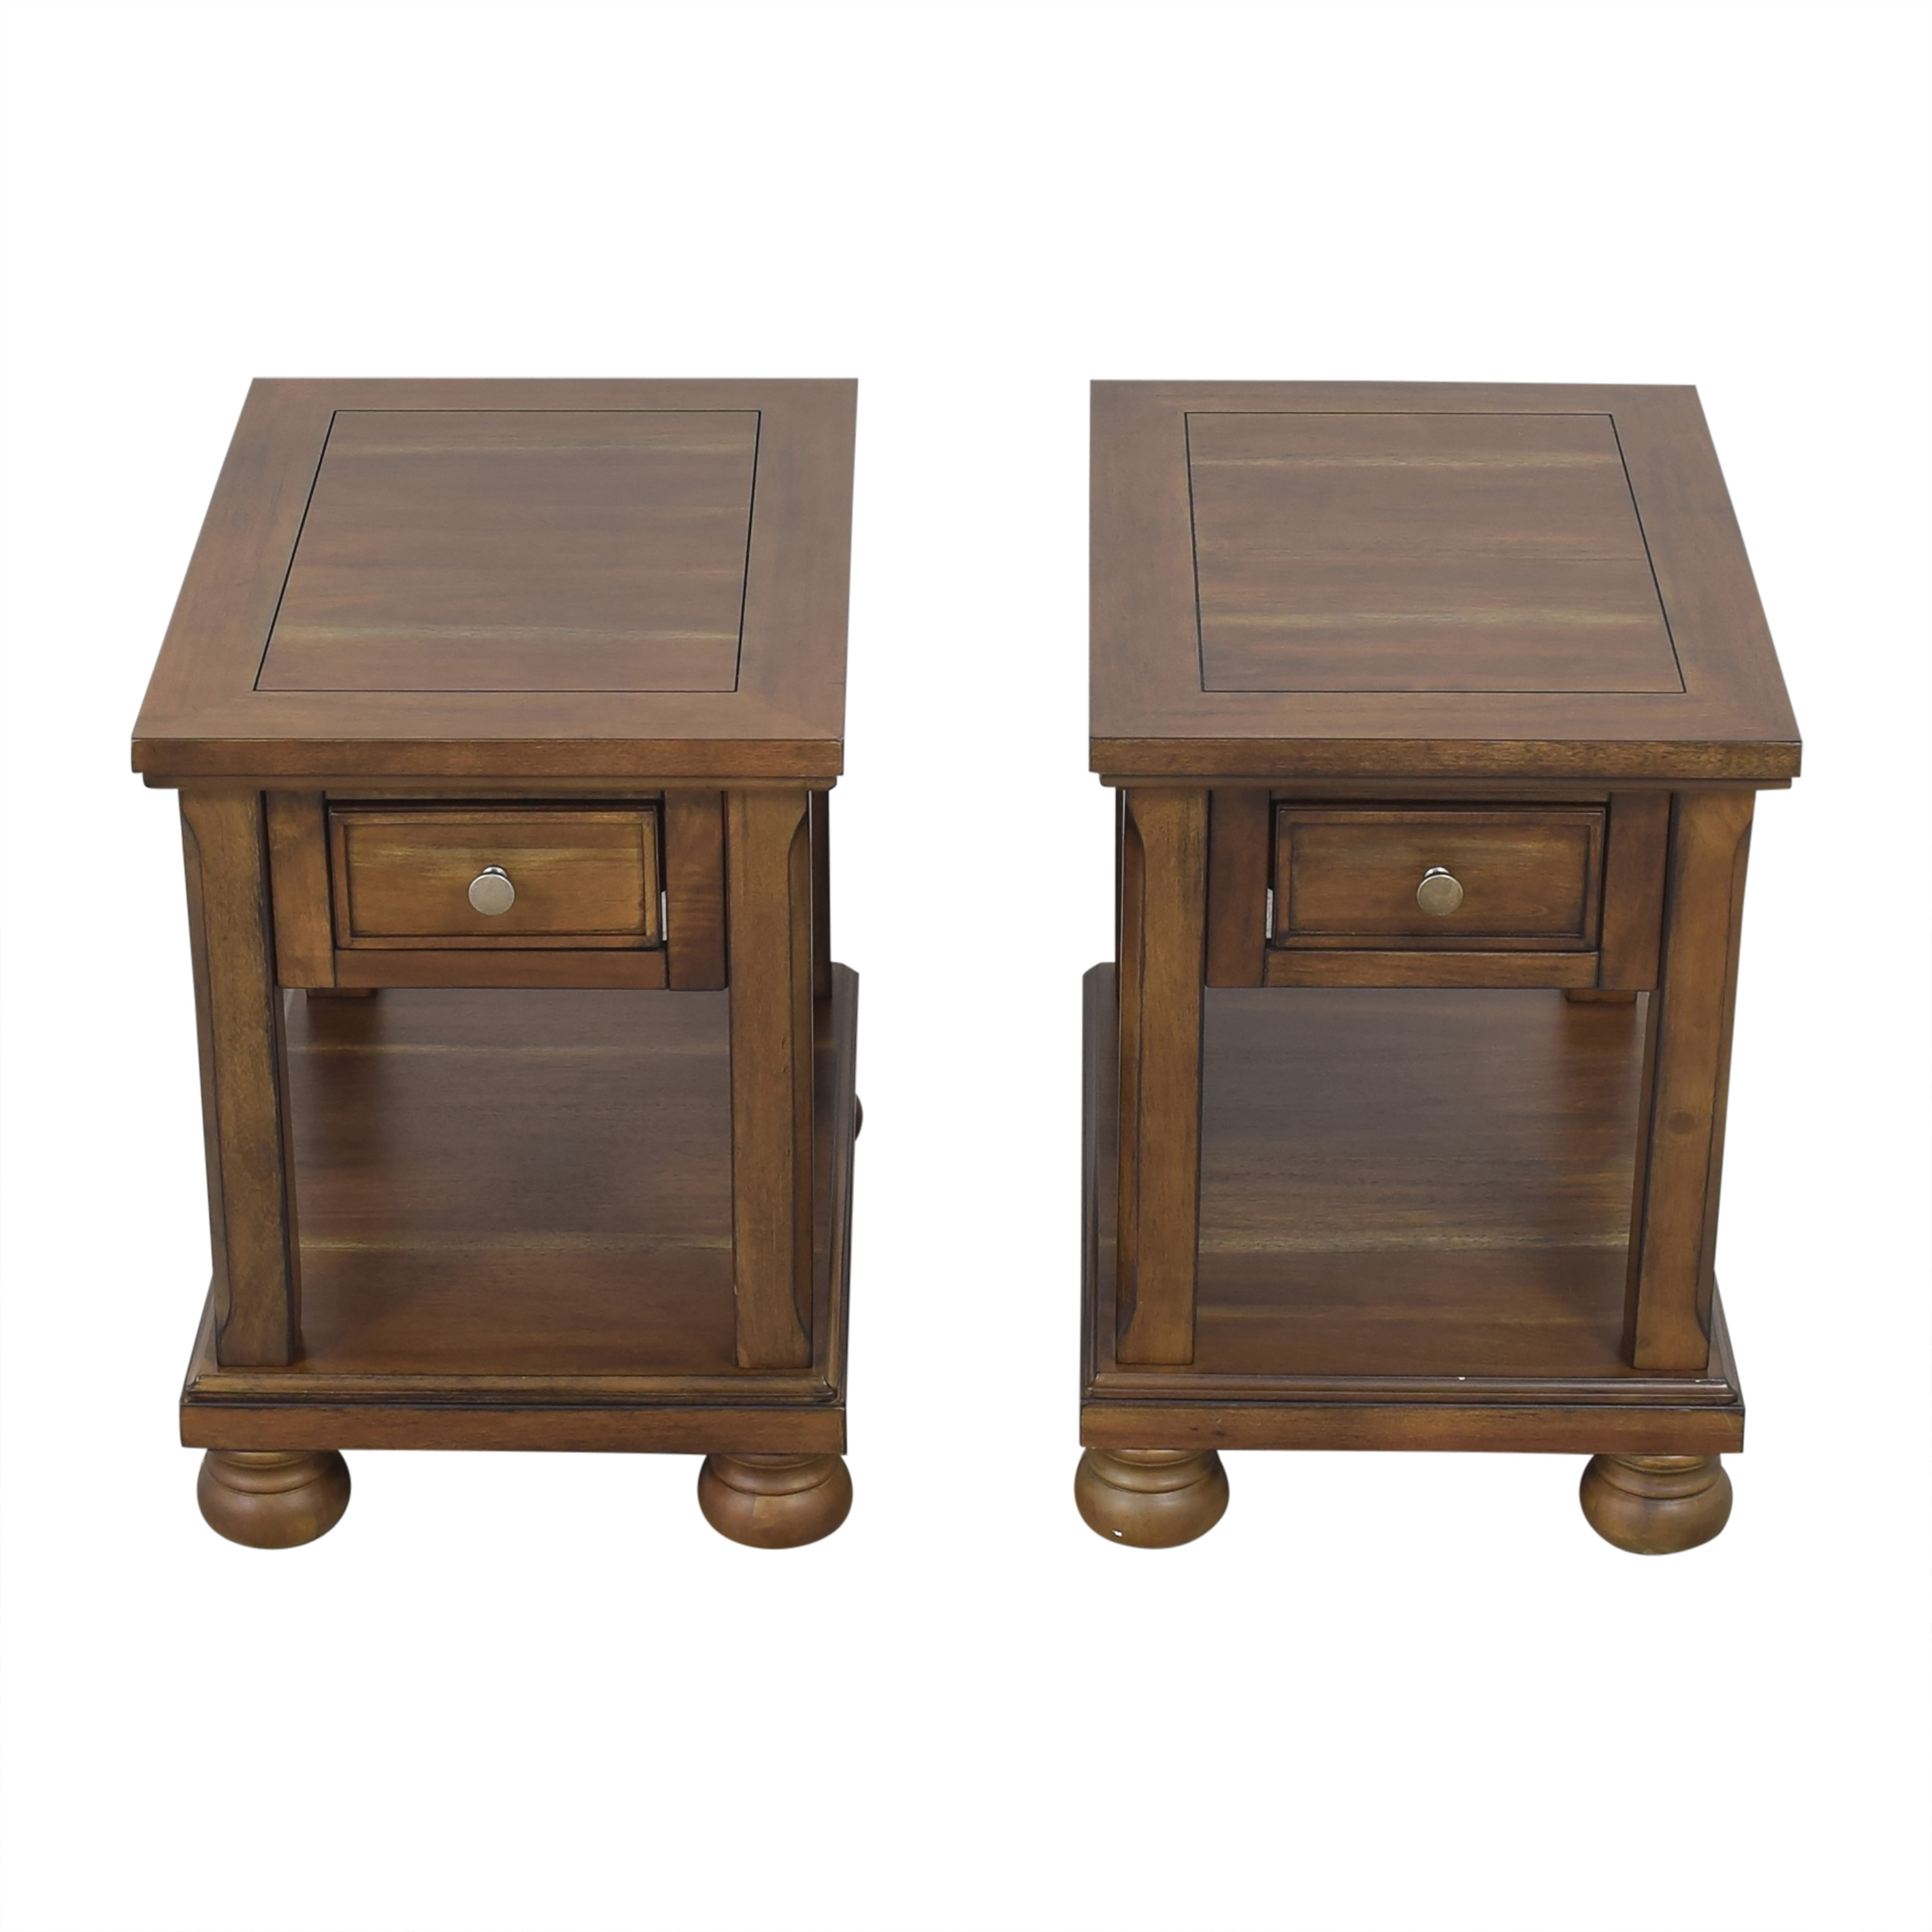 Ashley Furniture Ashley Furniture Porter Chairside End Tables nyc